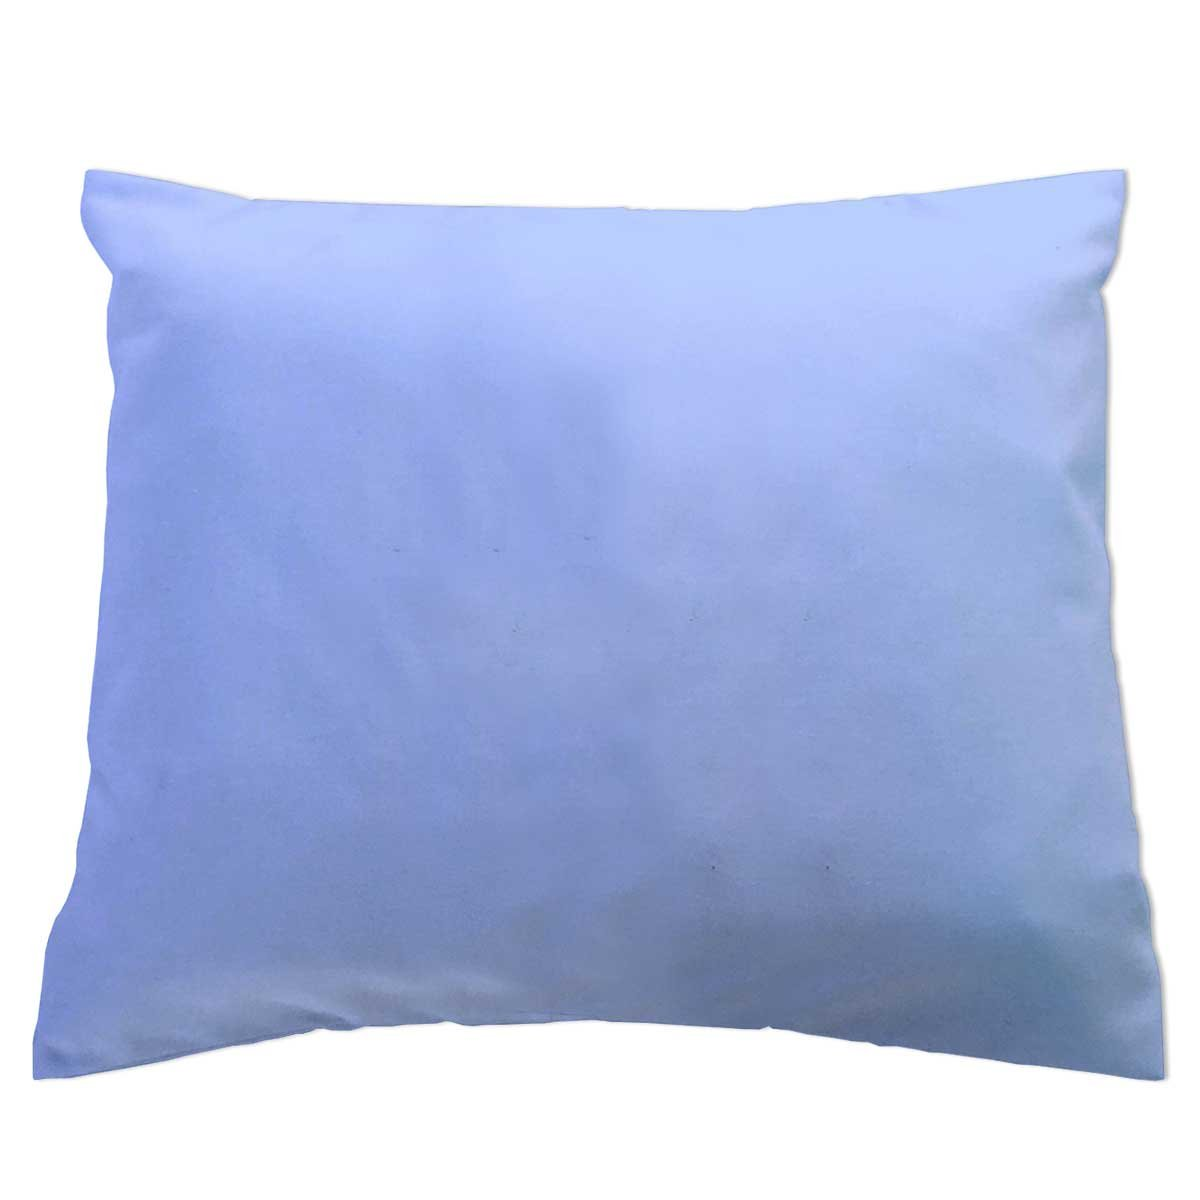 Crib/Toddler Flannel Baby Pillow Case - Light Solids - Blue - Made In USA